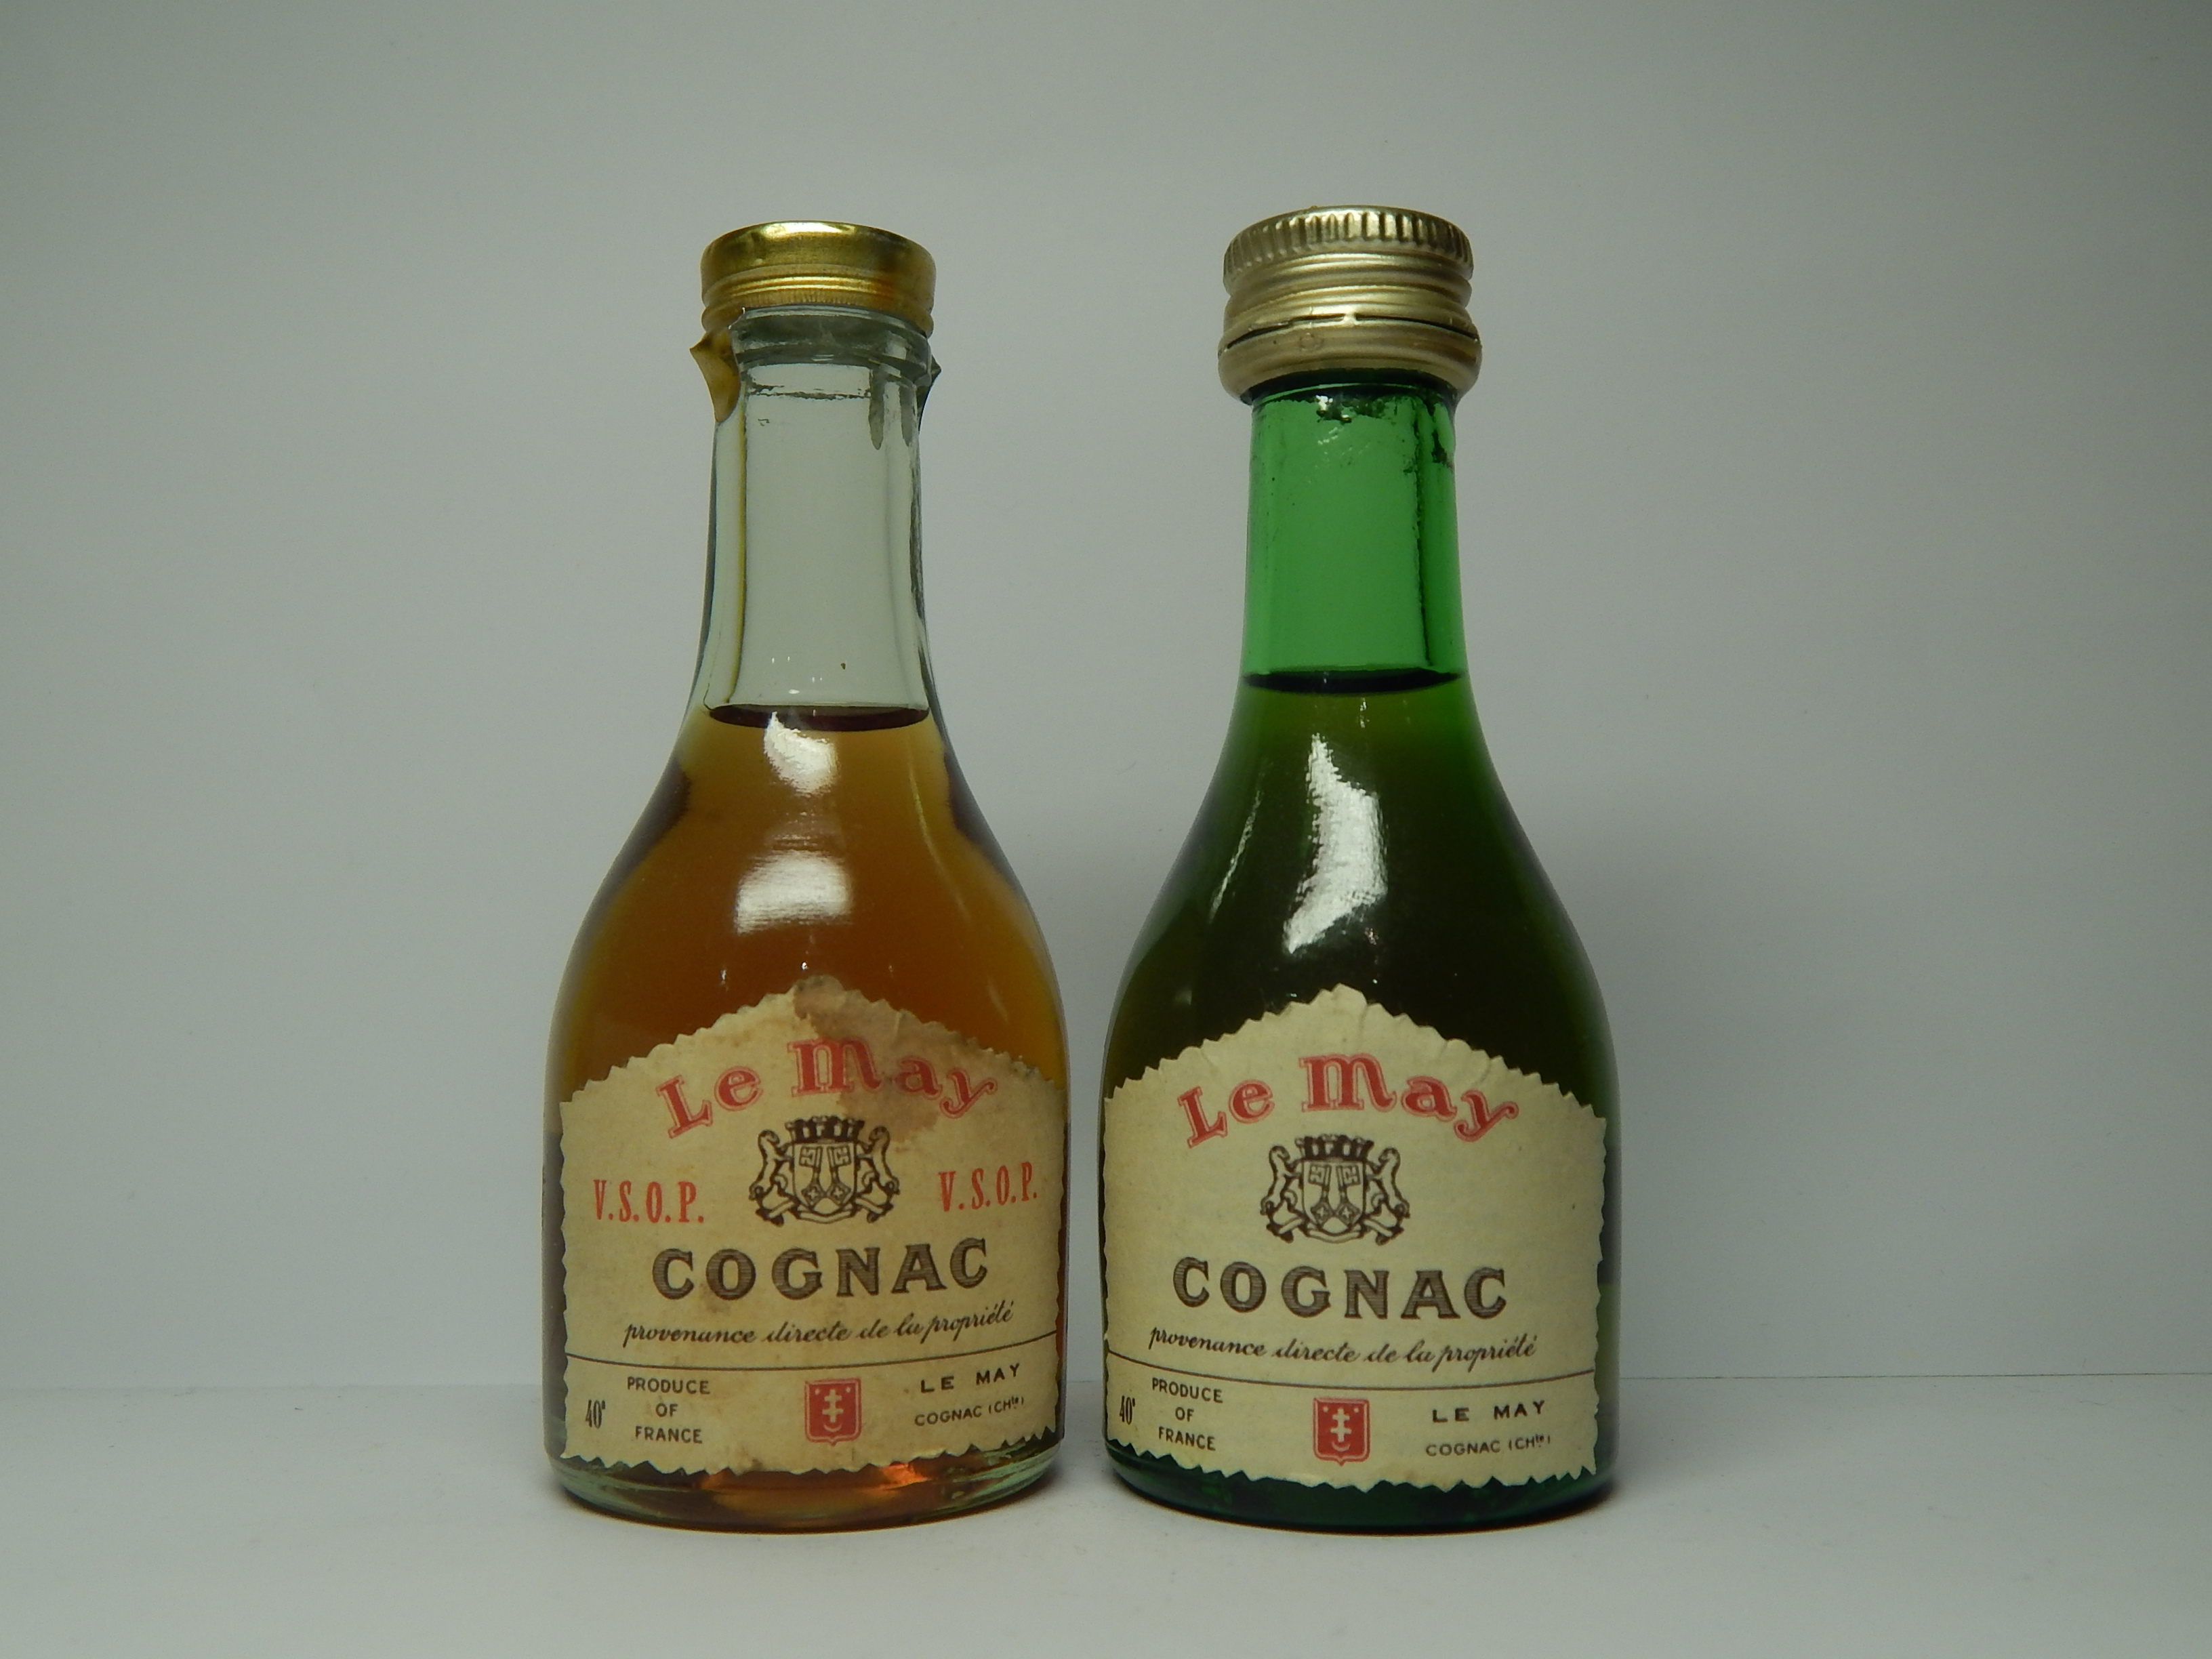 LE MAY V.S.O.P. Cognac